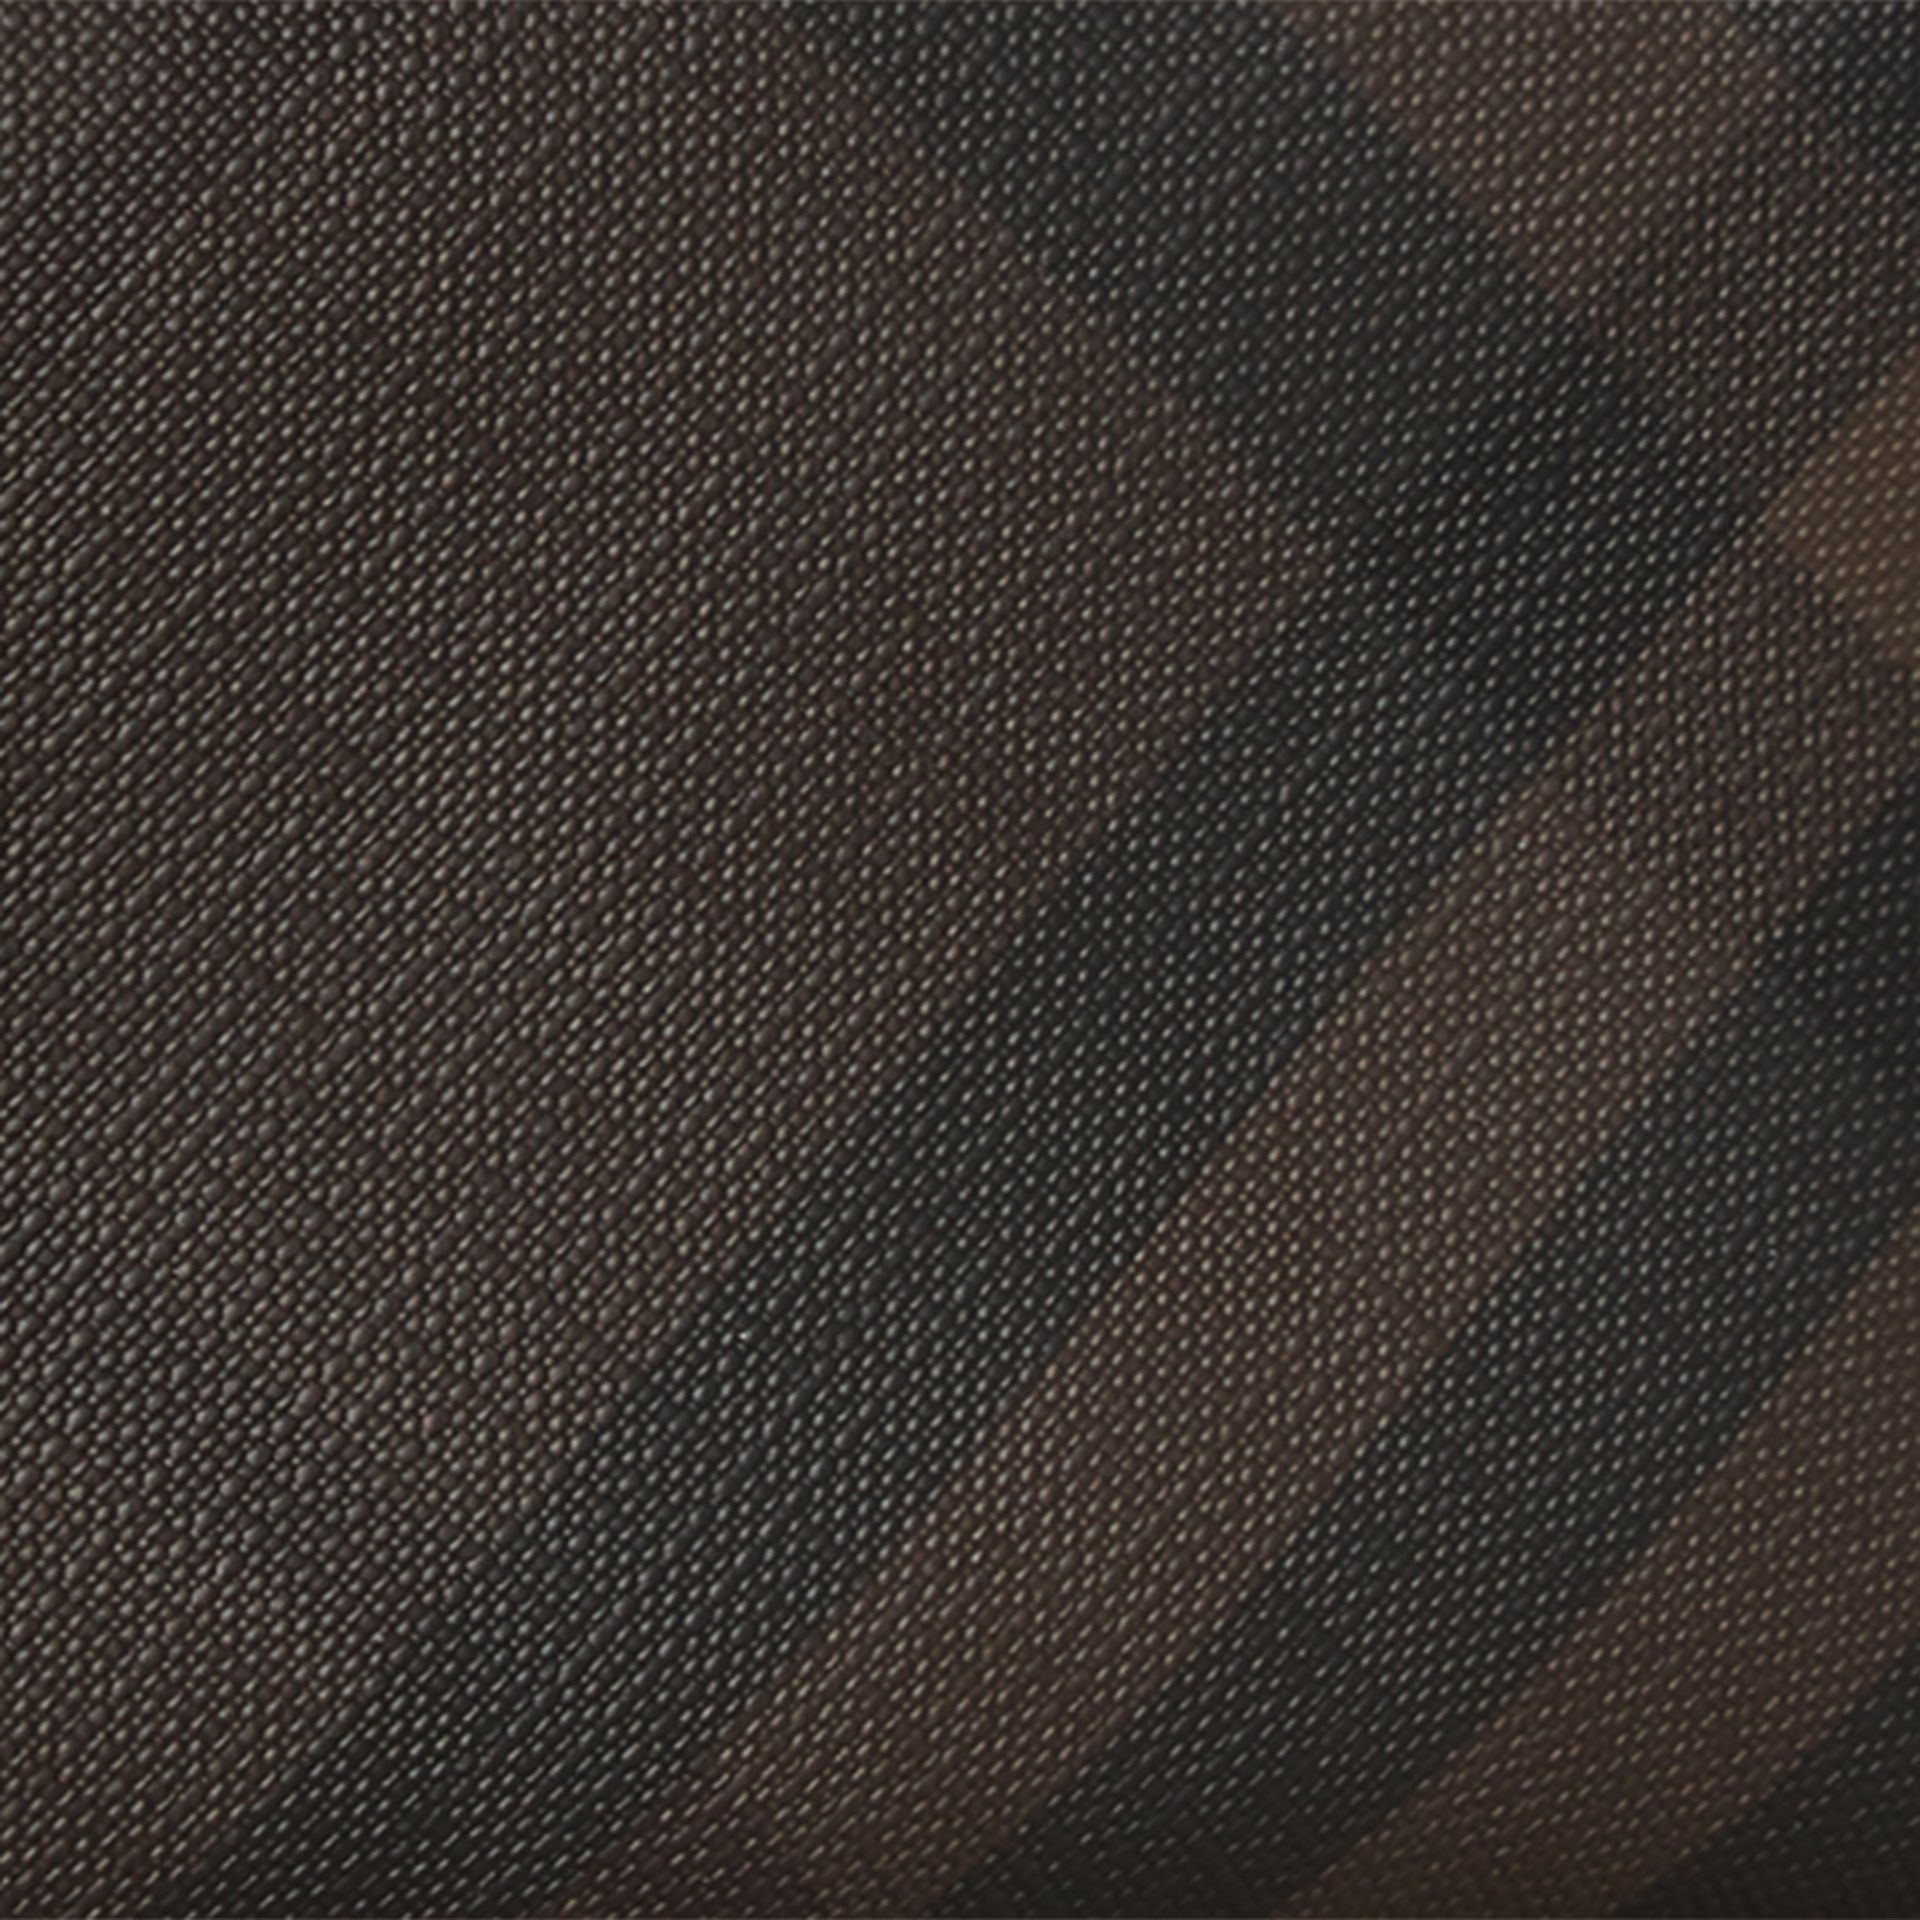 London Check Ziparound Wallet in Chocolate/black - Men | Burberry Canada - gallery image 2